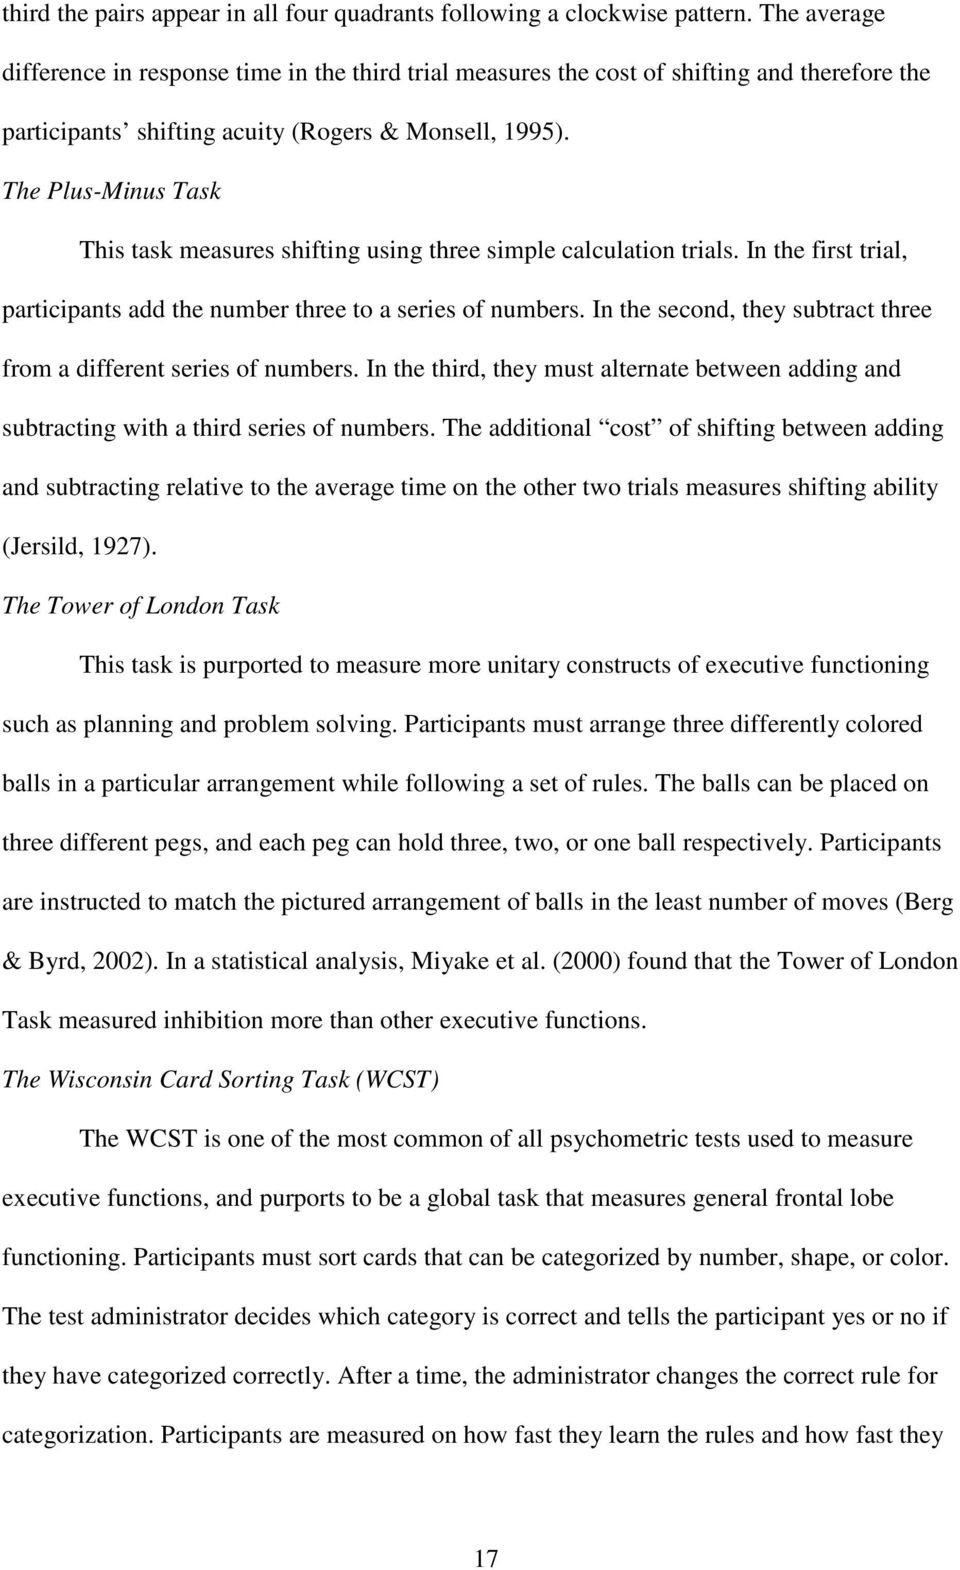 The Plus-Minus Task This task measures shifting using three simple calculation trials. In the first trial, participants add the number three to a series of numbers.